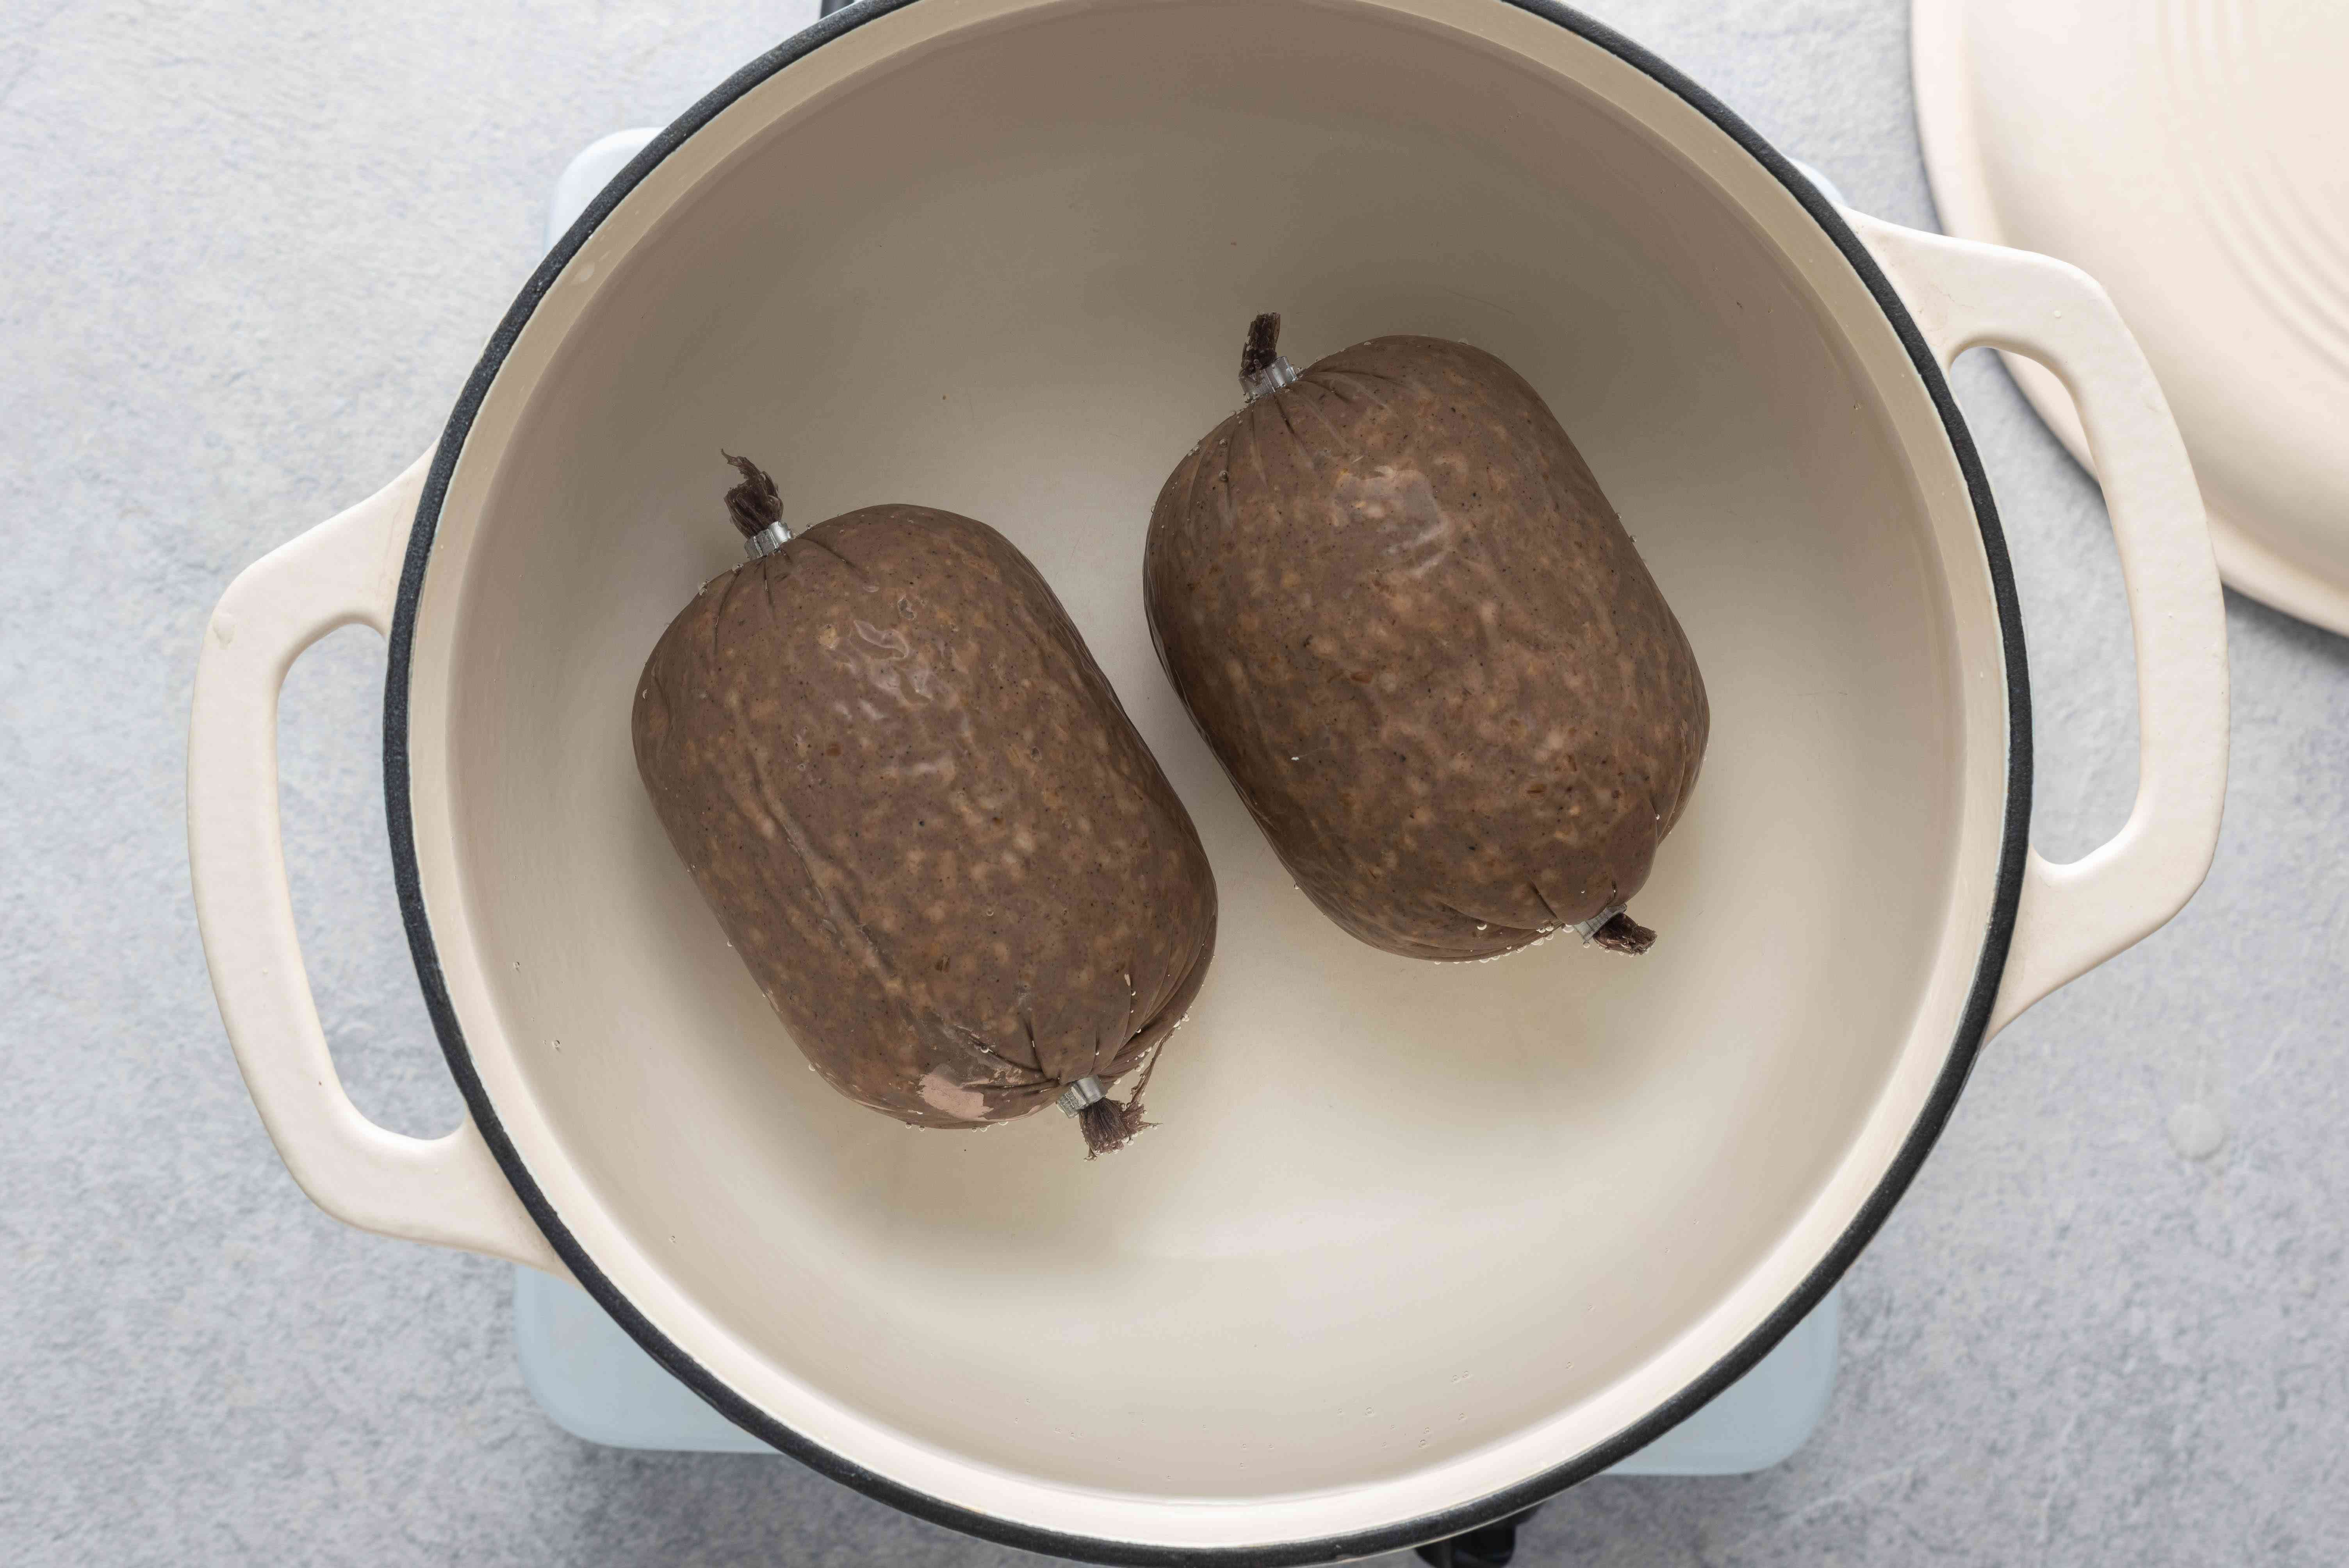 Cook the haggis by placing it in a large pot and covering it with water, bring to boil